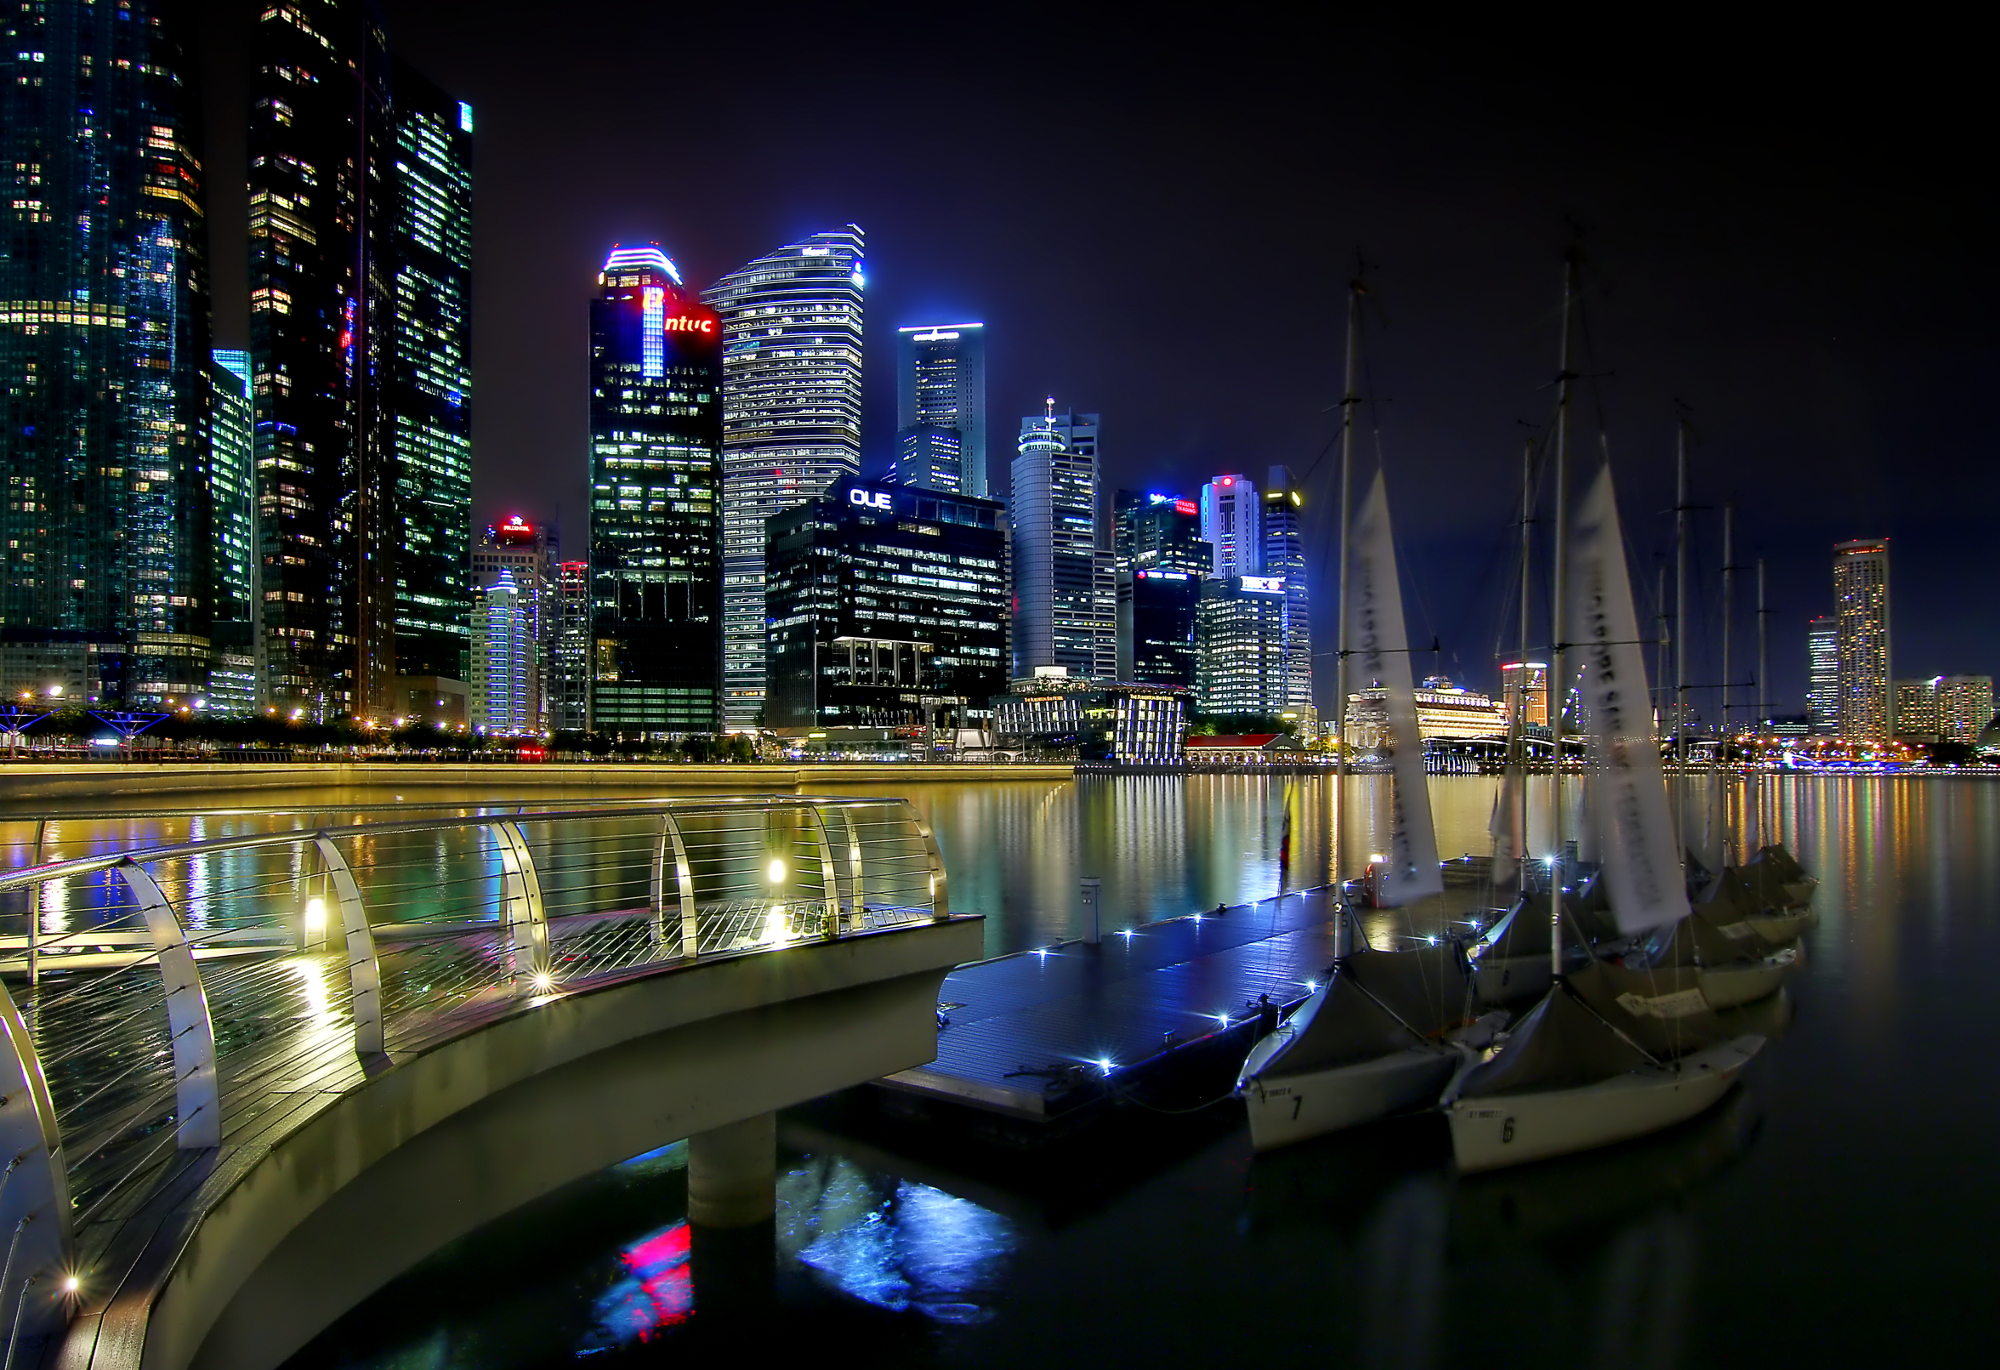 File:Boats at Marina Bay (8191487293).jpg - Wikimedia Commons